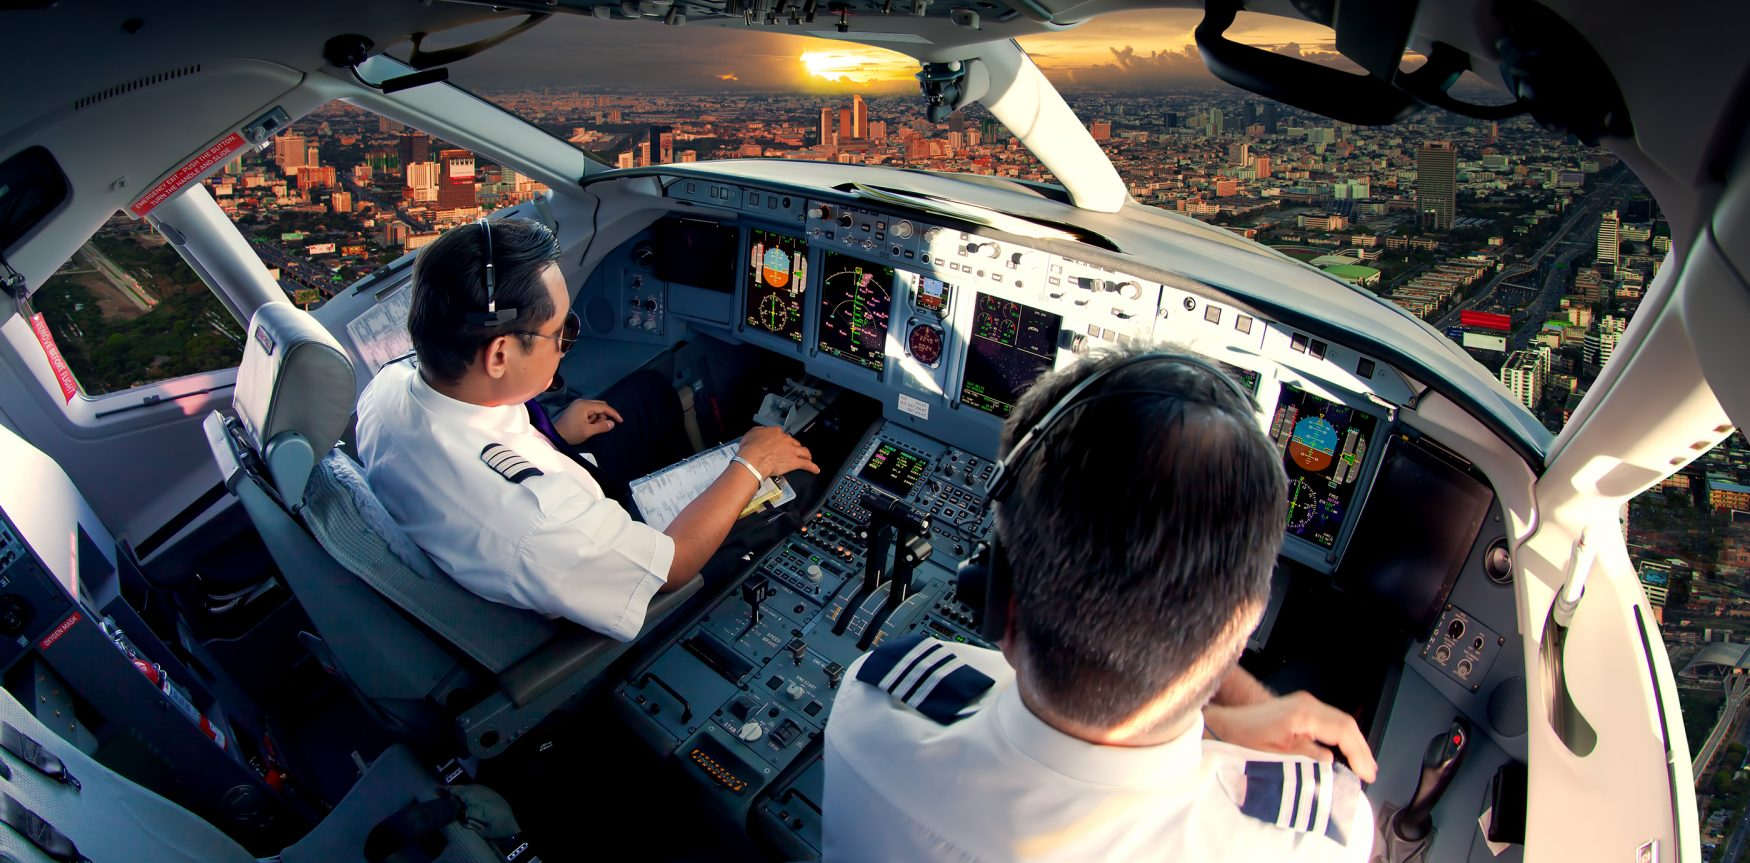 commercial jet cockpit with two pilots